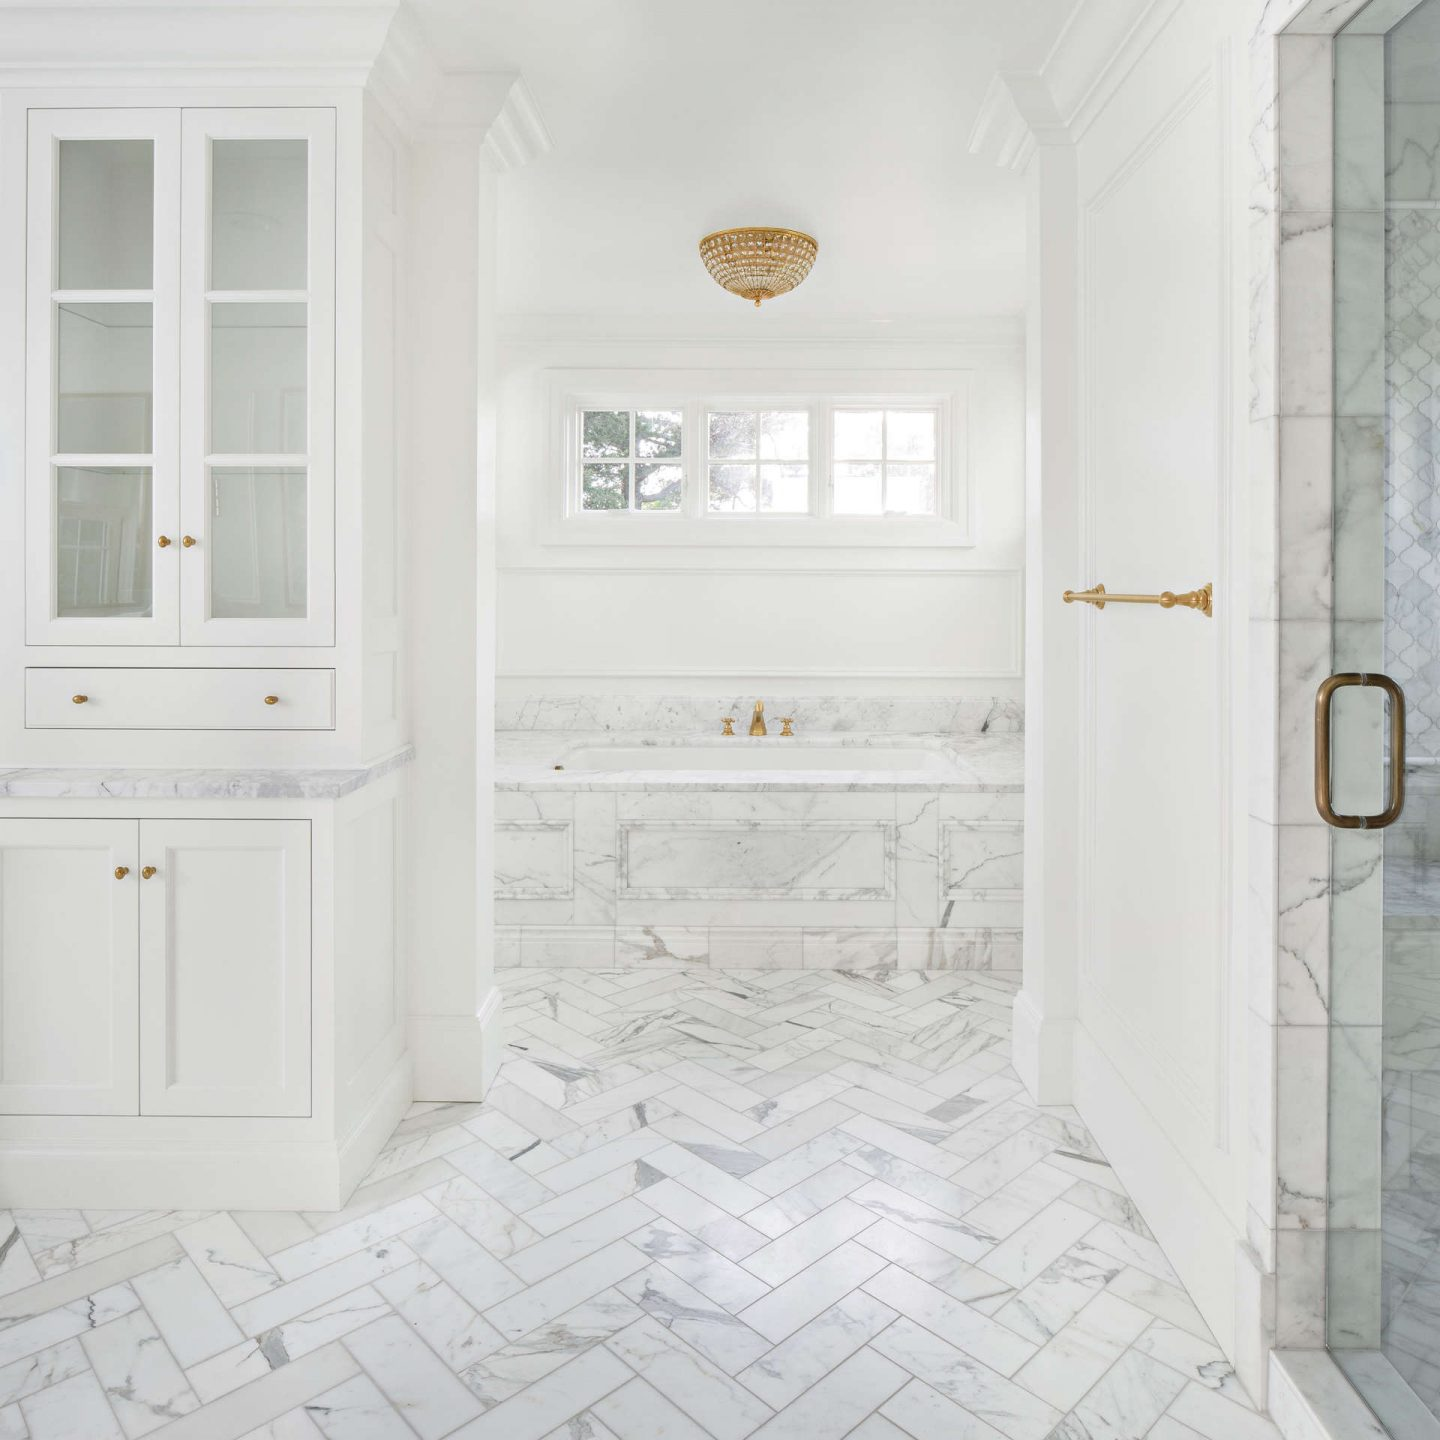 Calacatta marble tile and tub surround in a luxurious white classic bathroom. Come explore these timeless design ideas...hello lovely indeed.  #thefoxgroup #bathroomdesign #calacattamarble